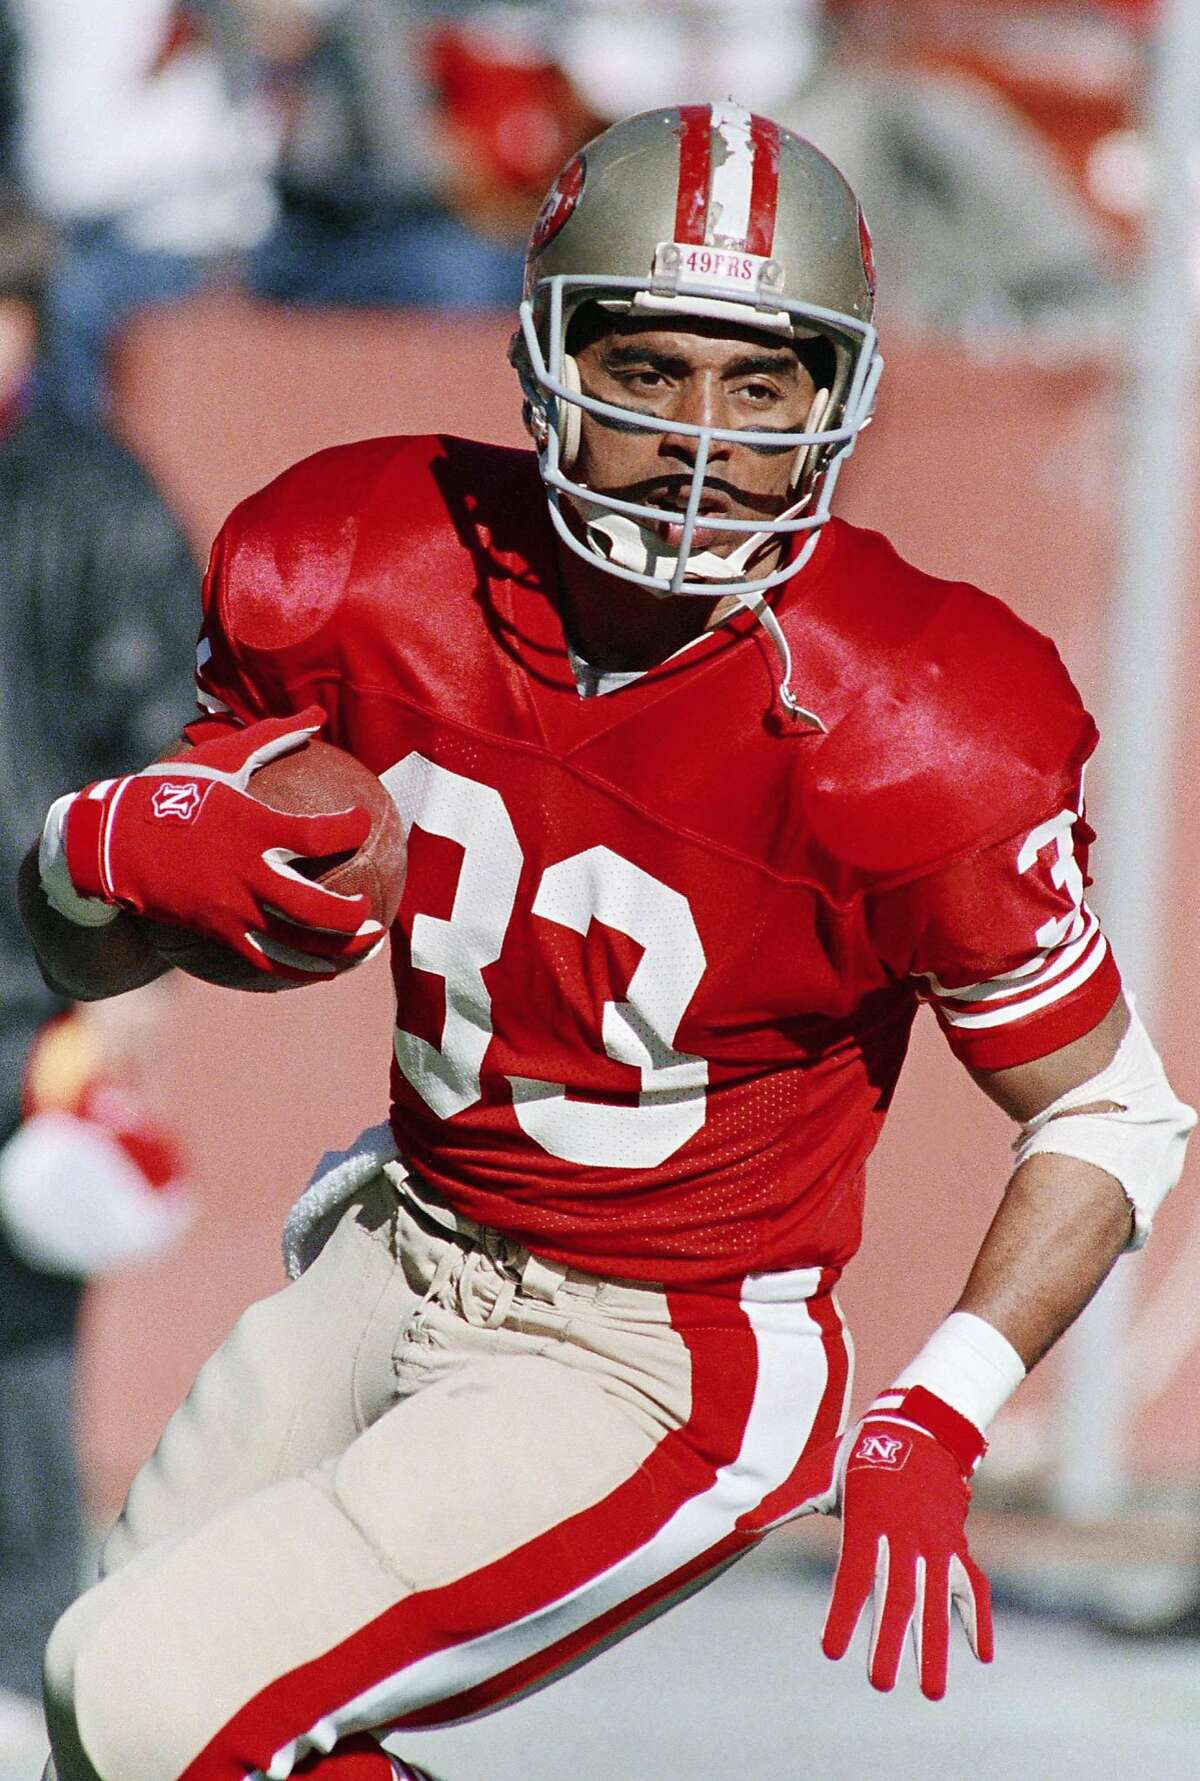 San Francisco 49ers running back Roger Craig carries the ball during the 49ers NFC Divisional playoff game against the Minnesota Vikings, Jan. 1, 1989, San Francisco, Calif. The 49ers will face the Cincinnati Bengals in Super Bowl XXIII. (AP Photo/John Gaps)